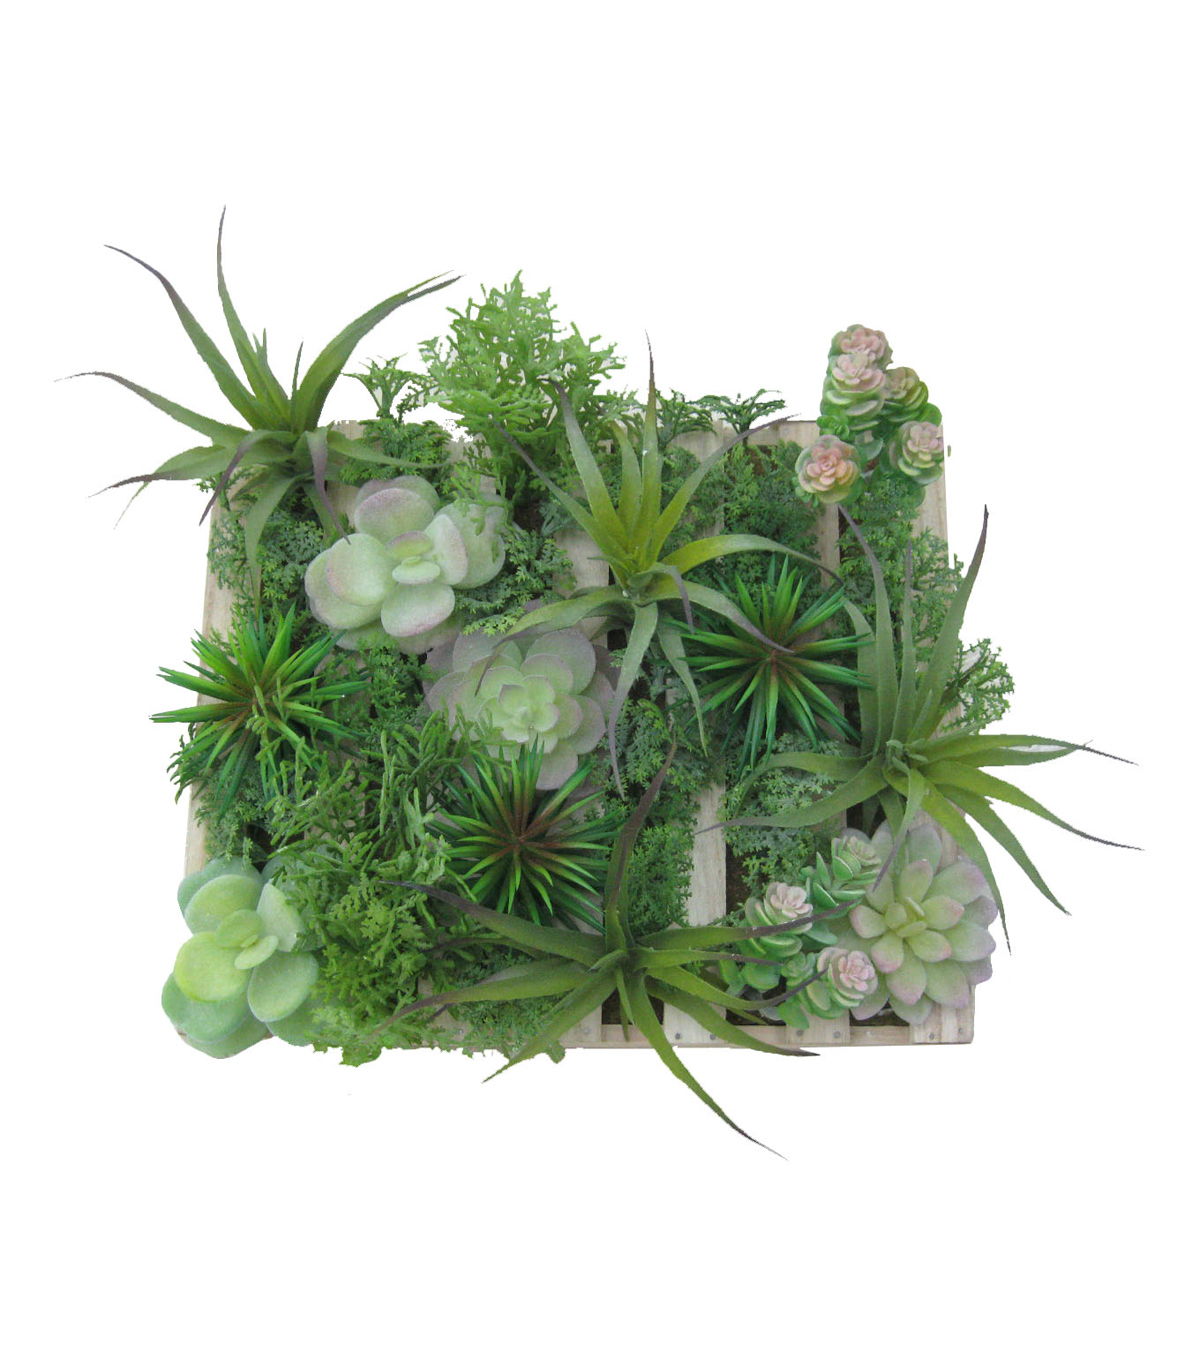 Bloom Room Succulent Grass Arrangement